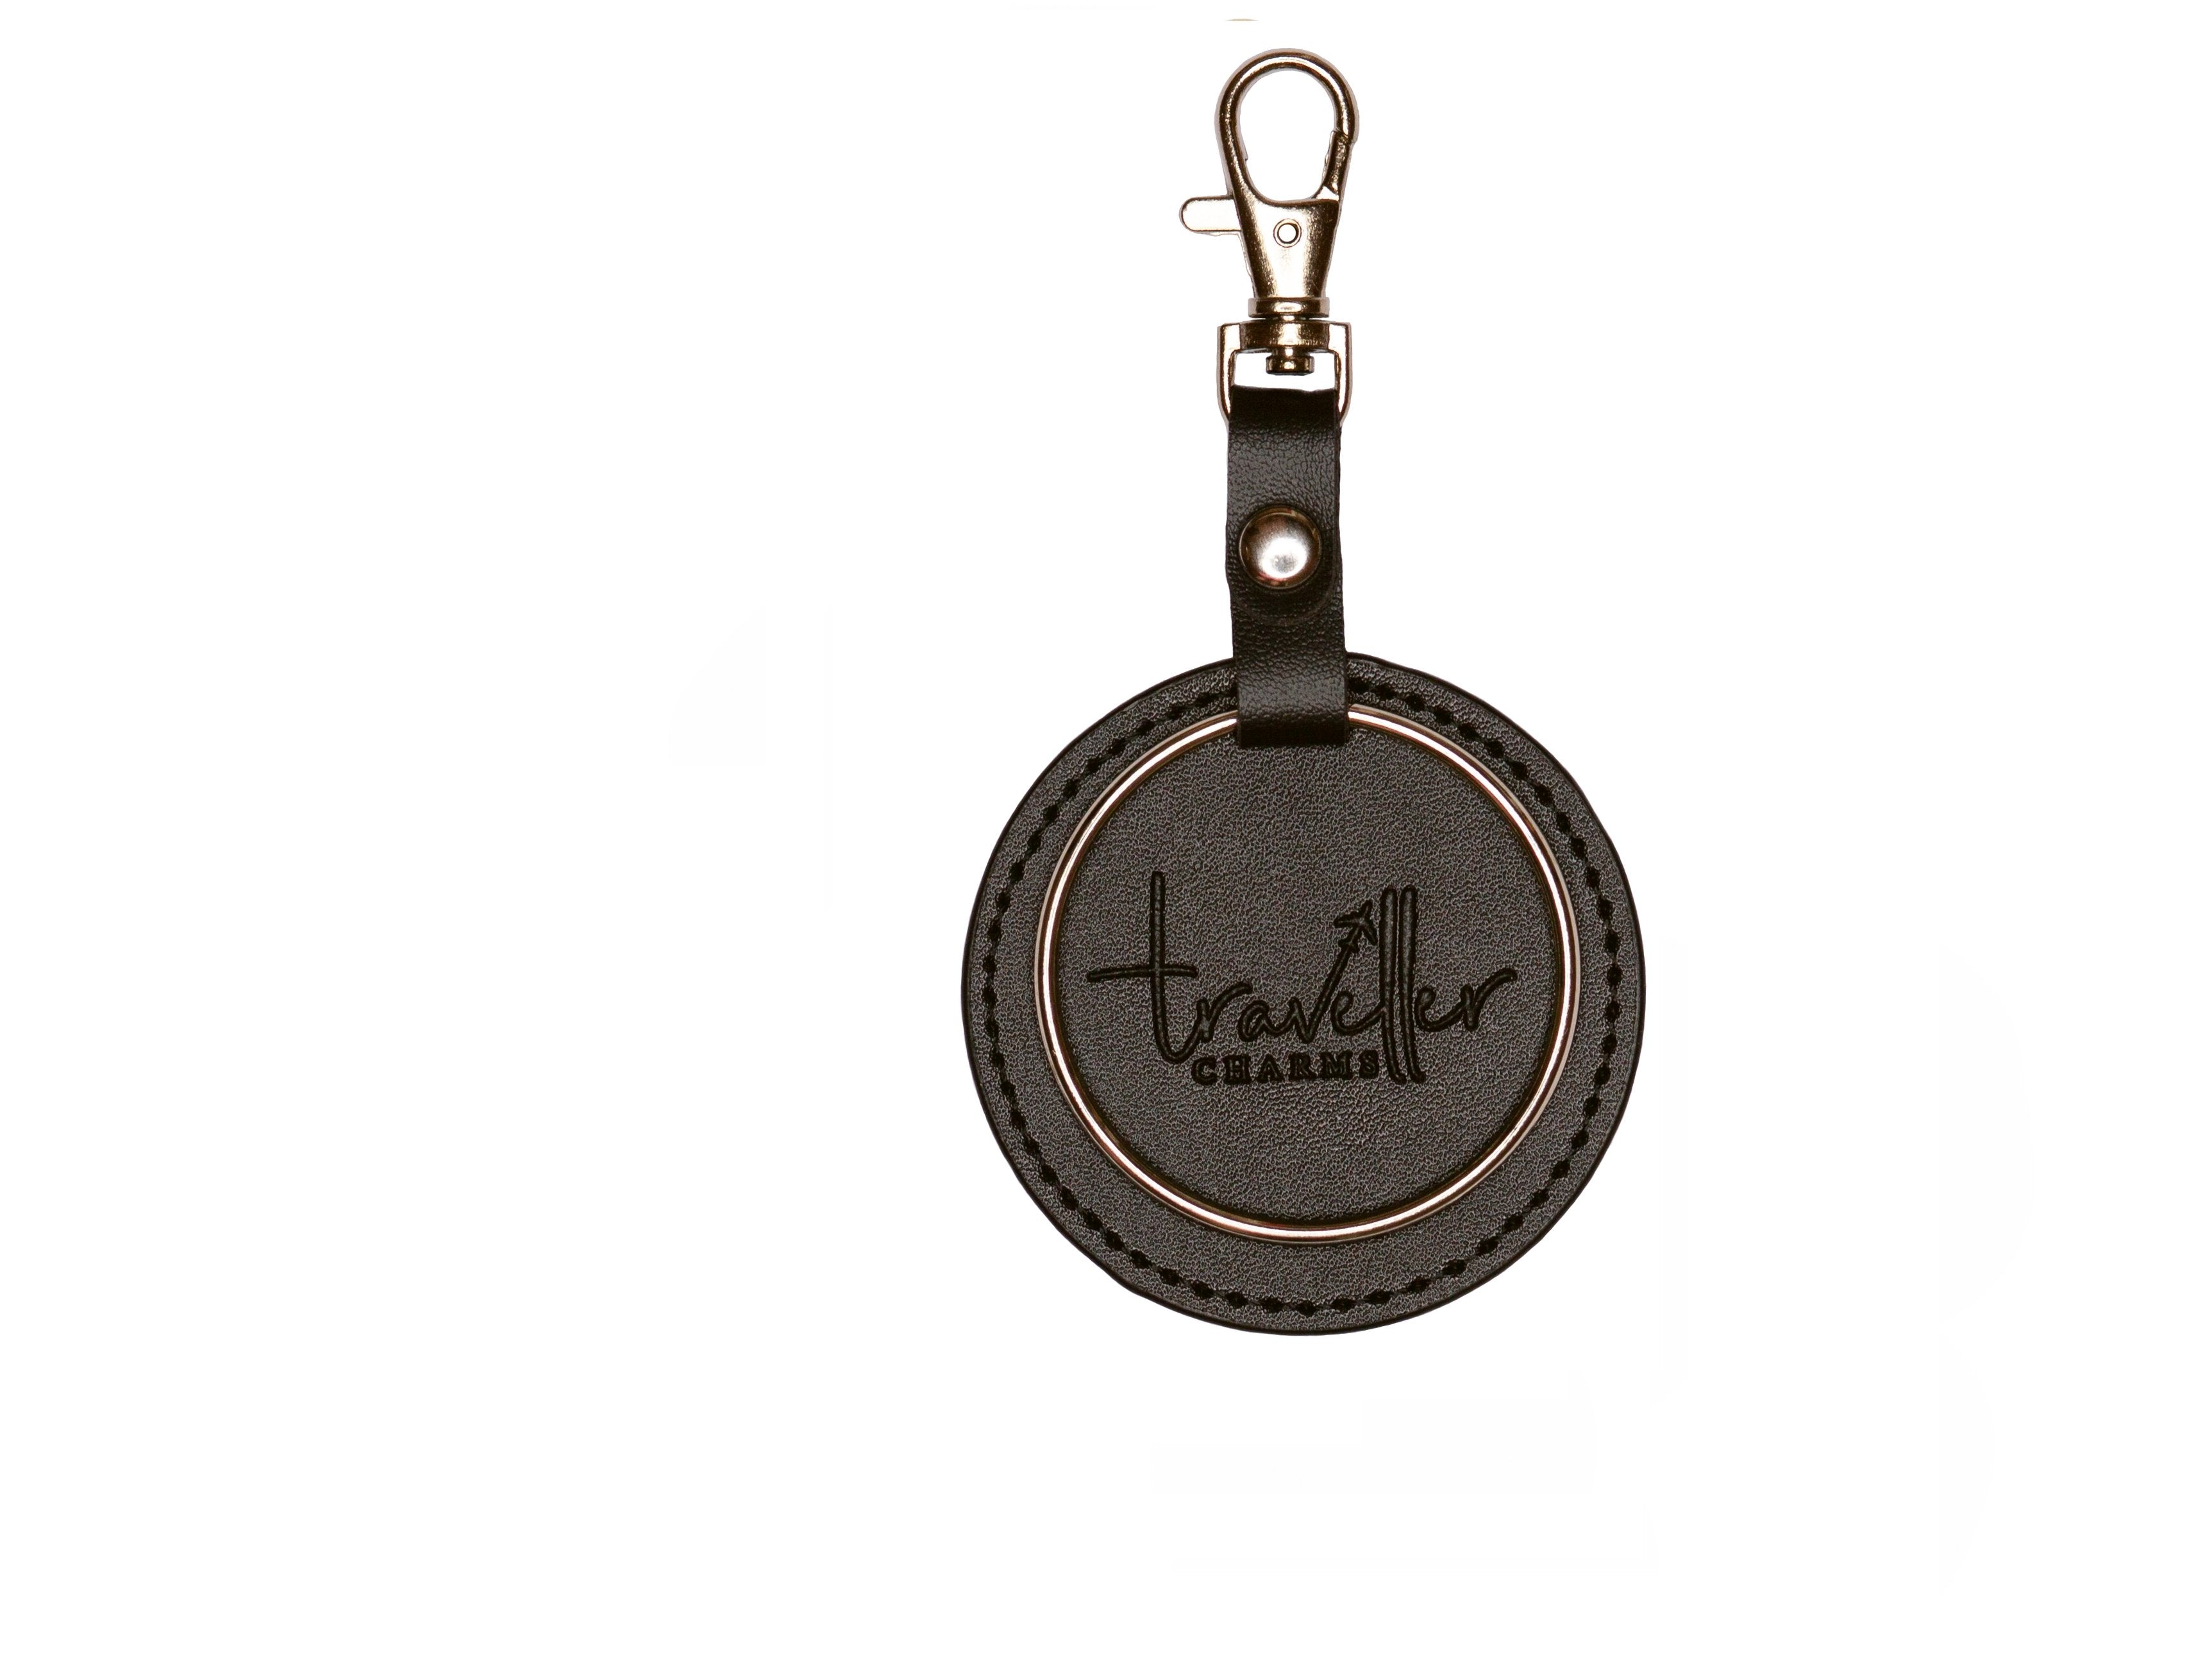 SILVER Key Chain - Black - Traveller Charms